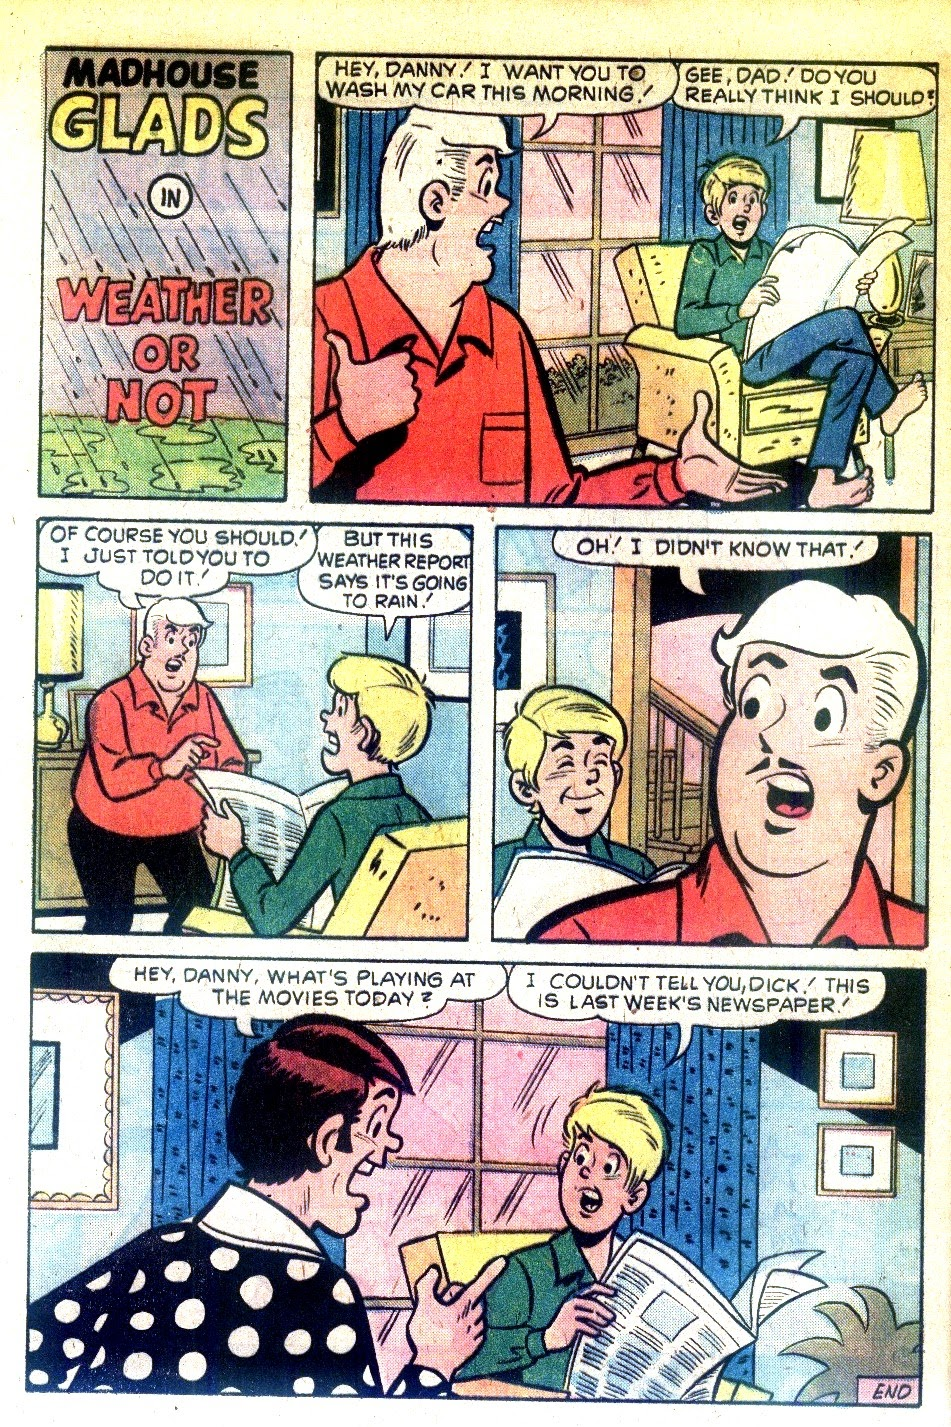 Read online The Mad House Glads comic -  Issue #92 - 36